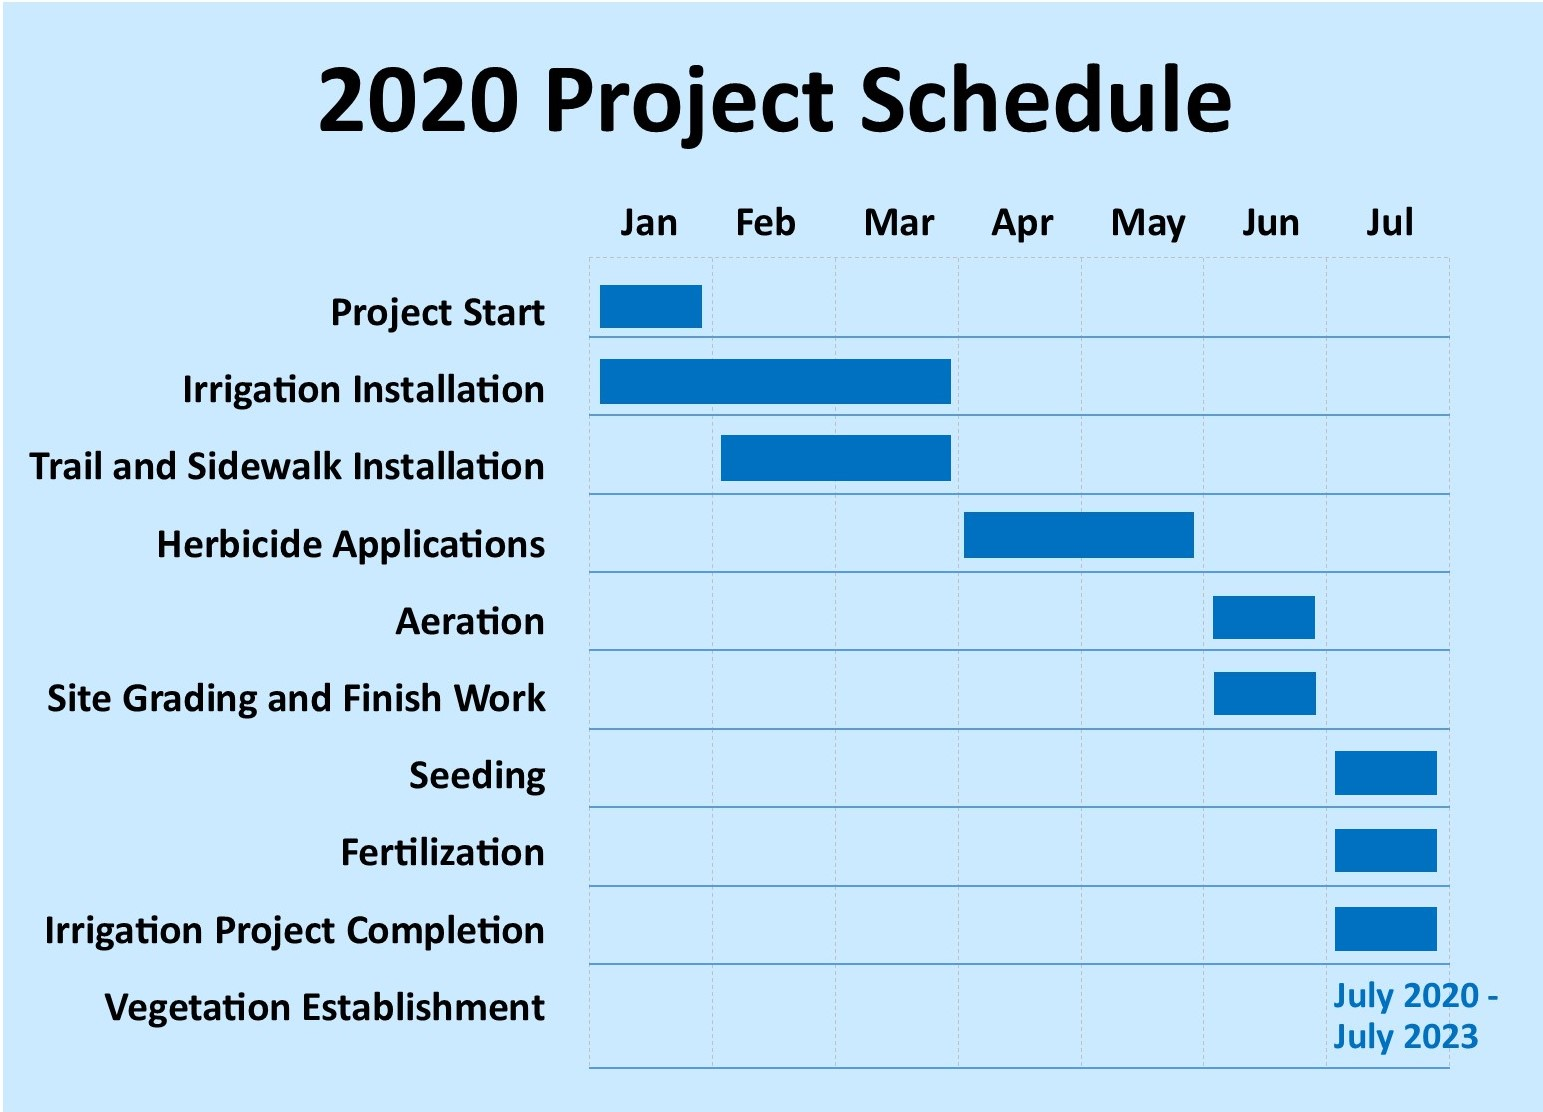 project scheule timeline graphic